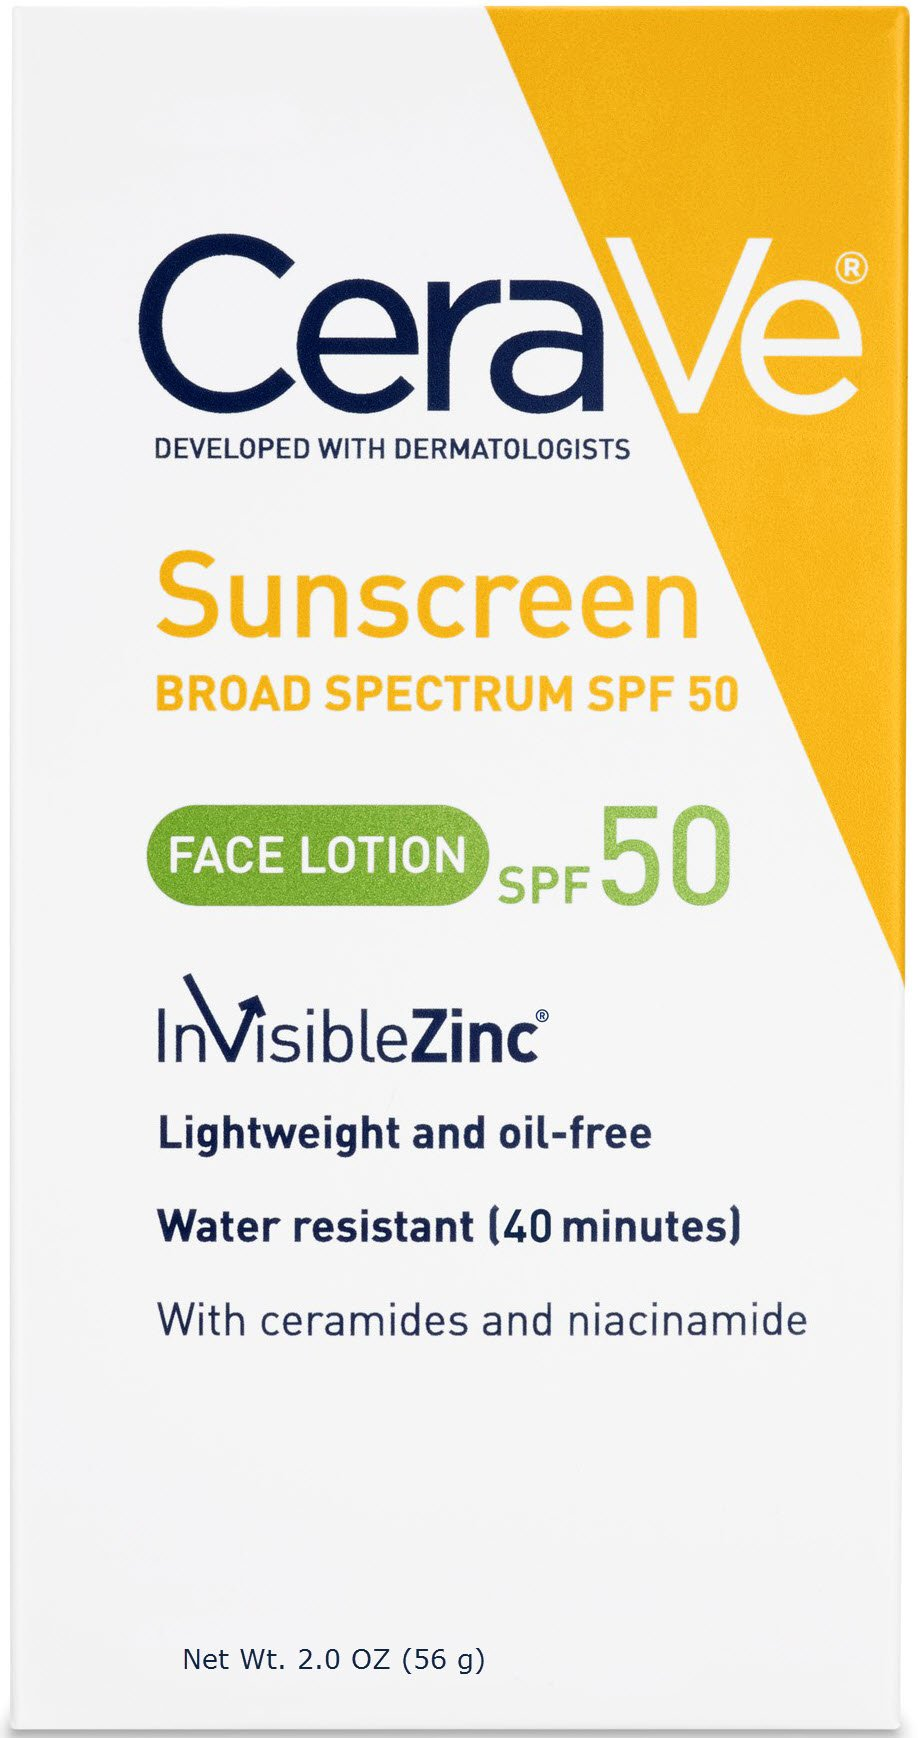 CeraVe Sunscreen Face Lotion SPF 50 2 oz with Zinc Oxide, Niacinamide and Ceramides for Broad Spectrum Sun Protection